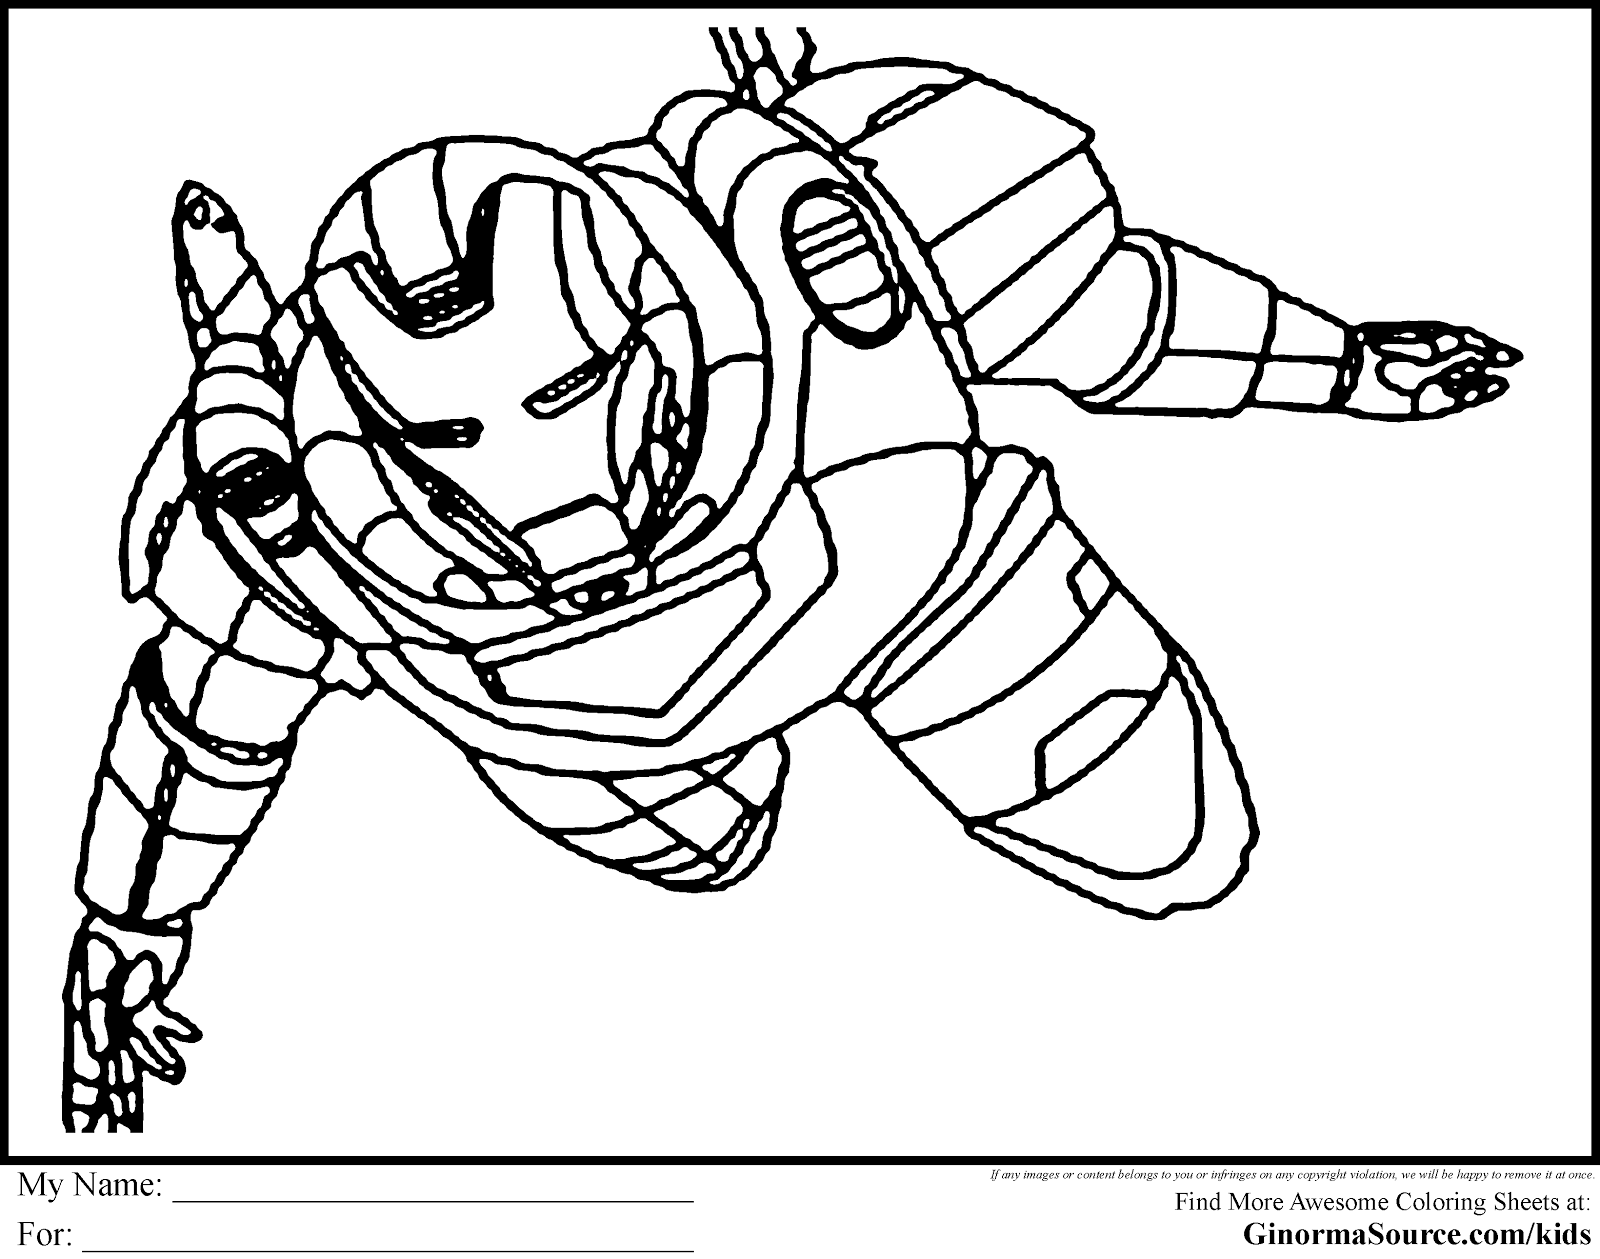 Printable Marvel Characters Coloring Pages